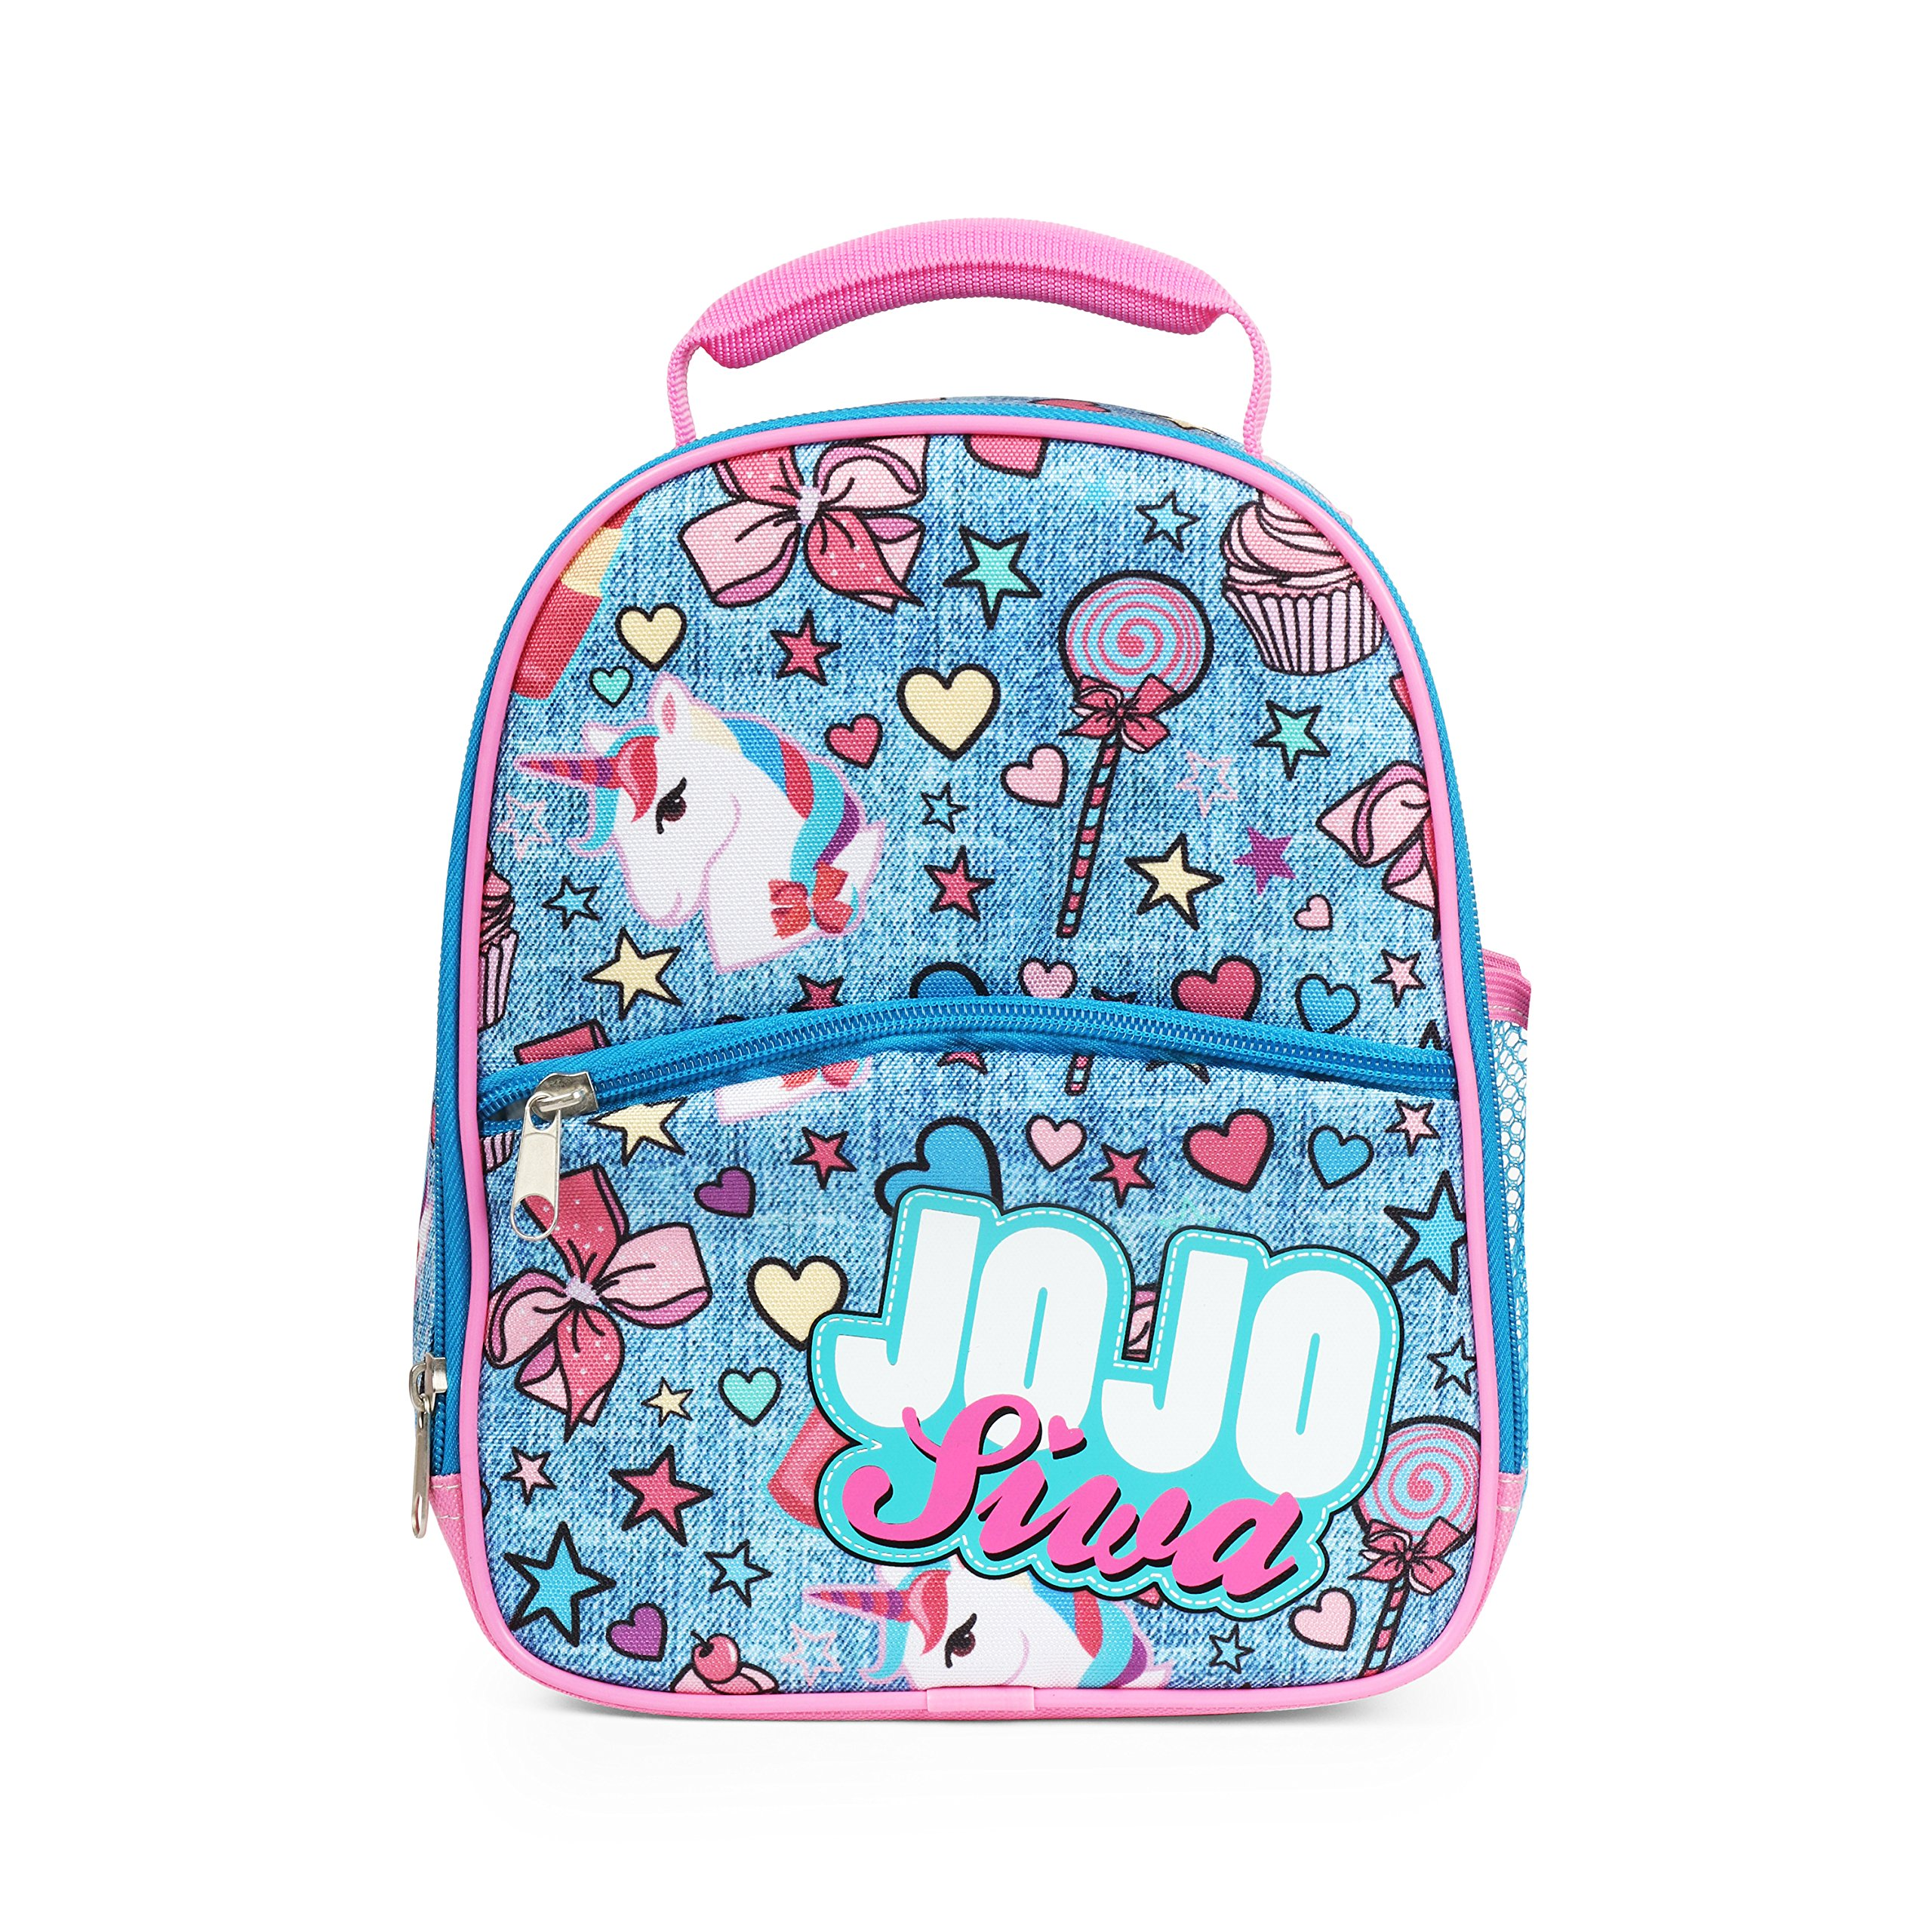 JoJo Siwa Denim Insulated Lunch Bag